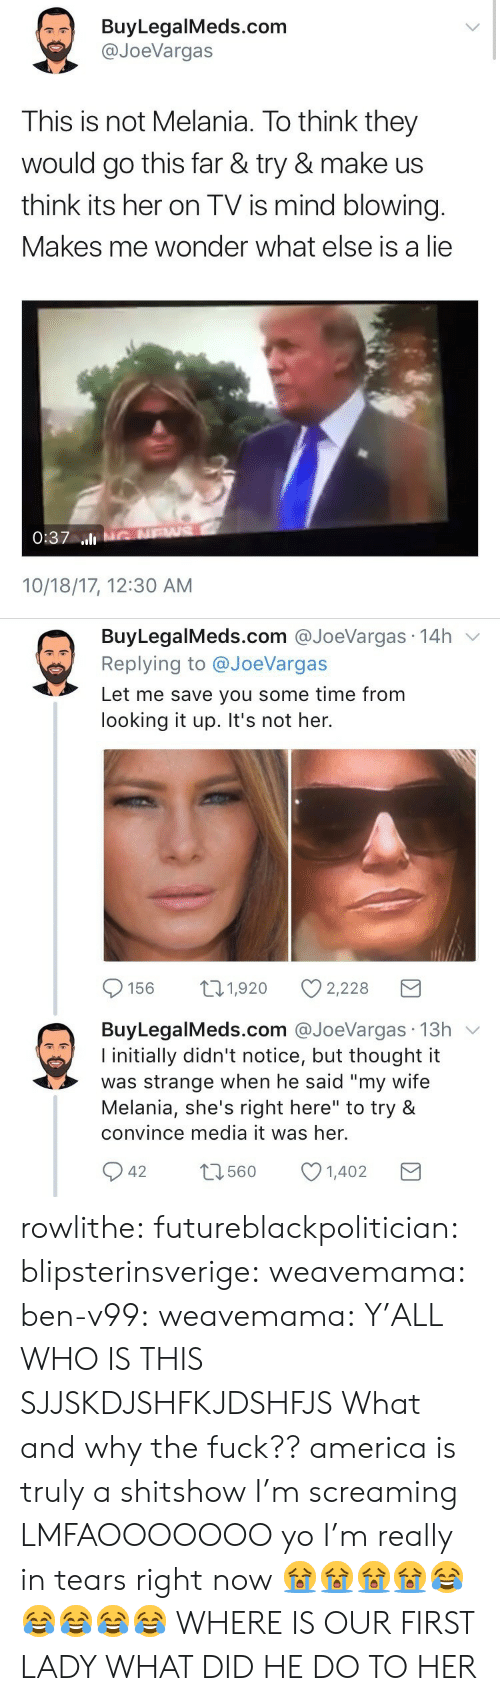 """Shes Right: BuyLegalMeds.com  @JoeVargas  This is not Melania. To think they  would go this far & try & make us  think its her on TV is mind blowing.  Makes me wonder what else is a lie  0:37 ll  10/18/17, 12:30 AM   BuyLegalMeds.com @JoeVargas 14h v  Replying to @JoeVargas  Let me save you some time from  looking it up. It's not her.  156 t1,920 2,228  BuyLegalMeds.com @JoeVargas 13h v  I initially didn't notice, but thought it  was strange when he said """"my wife  Melania, she's right here"""" to try &  convince media it was her.  42 1601402  t3560 rowlithe: futureblackpolitician:  blipsterinsverige:  weavemama:   ben-v99:   weavemama:  Y'ALL WHO IS THIS SJJSKDJSHFKJDSHFJS  What and why the fuck??   america is truly a shitshow I'm screaming      LMFAOOOOOOO yo I'm really in tears right now 😭😭😭😭😂😂😂😂😂   WHERE IS OUR FIRST LADY WHAT DID HE DO TO HER"""